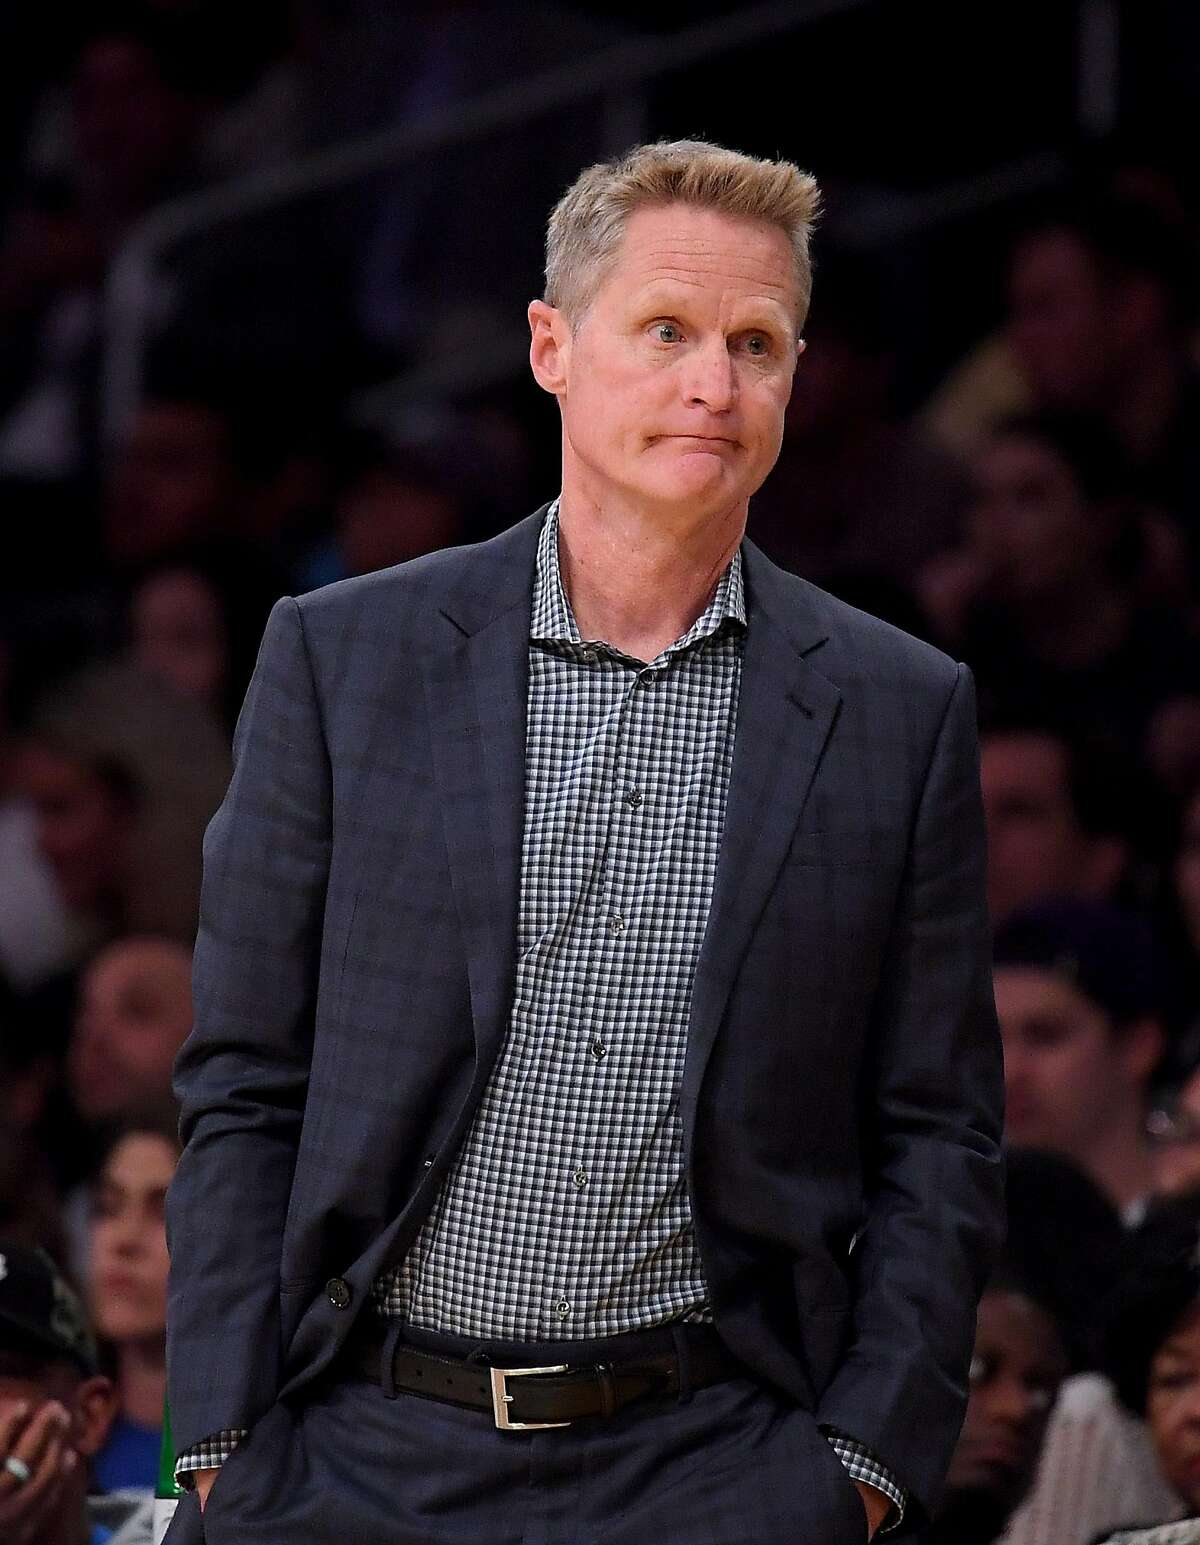 Head coach Steve Kerr of the Golden State Warriors reacts to play during the first half against the Los Angeles Lakers at Staples Center on October 14, 2019 in Los Angeles, California.